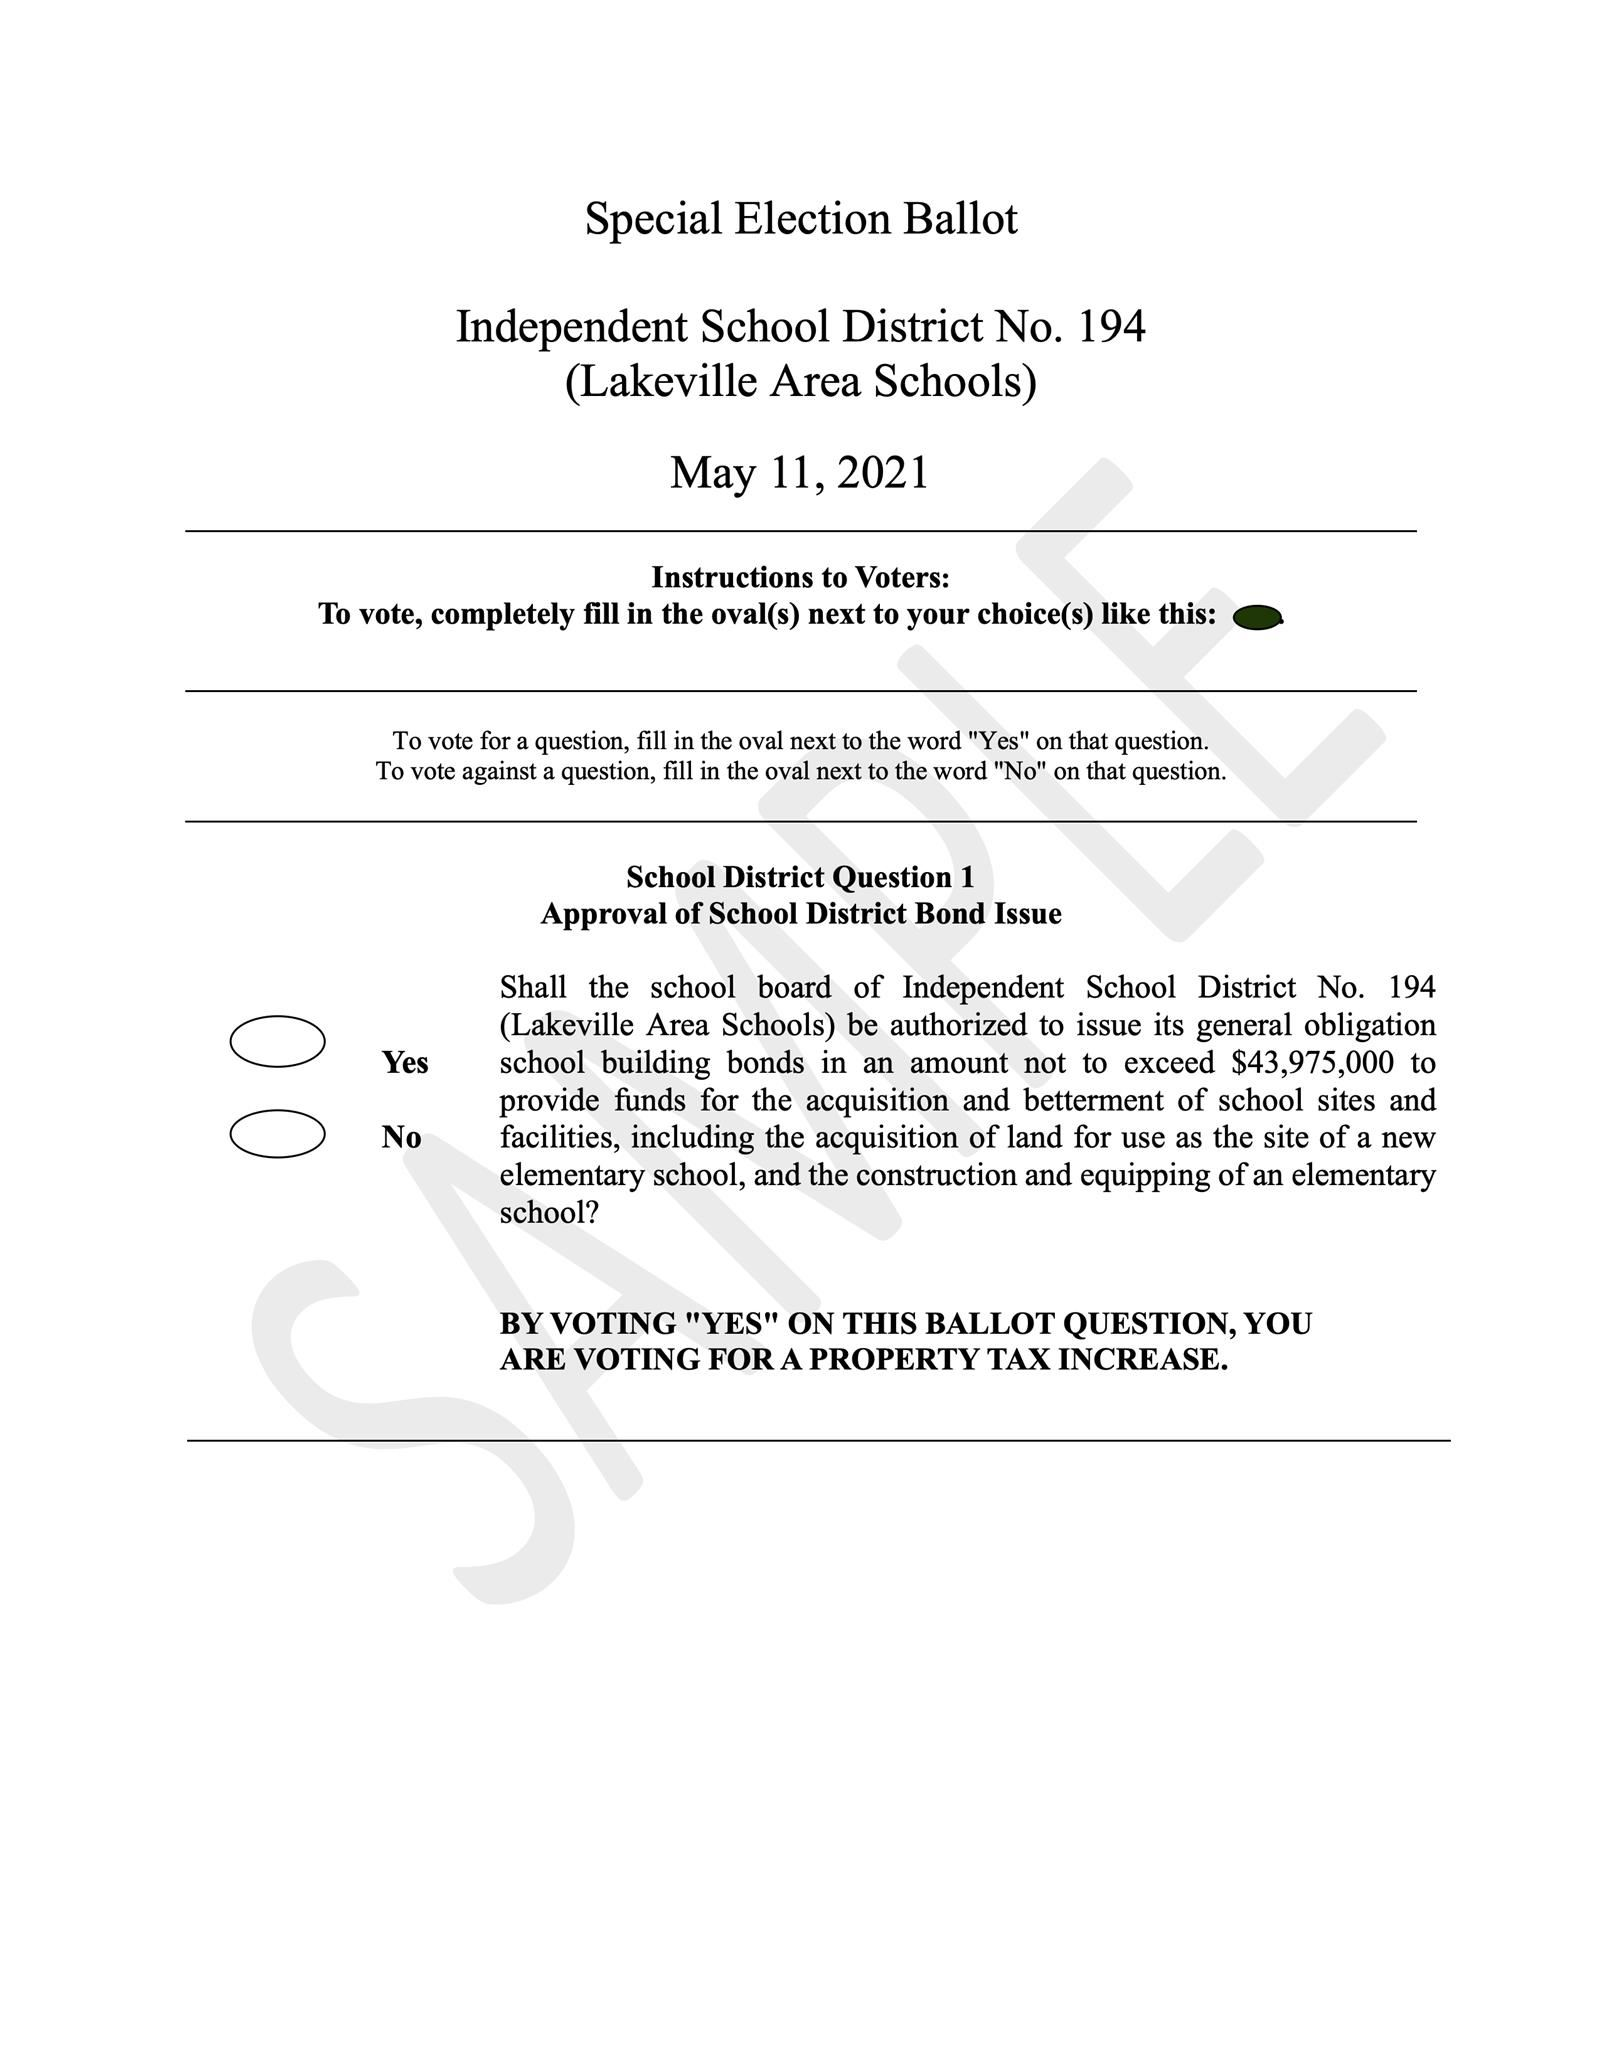 Image of the Referendum 2021 Sample Ballot